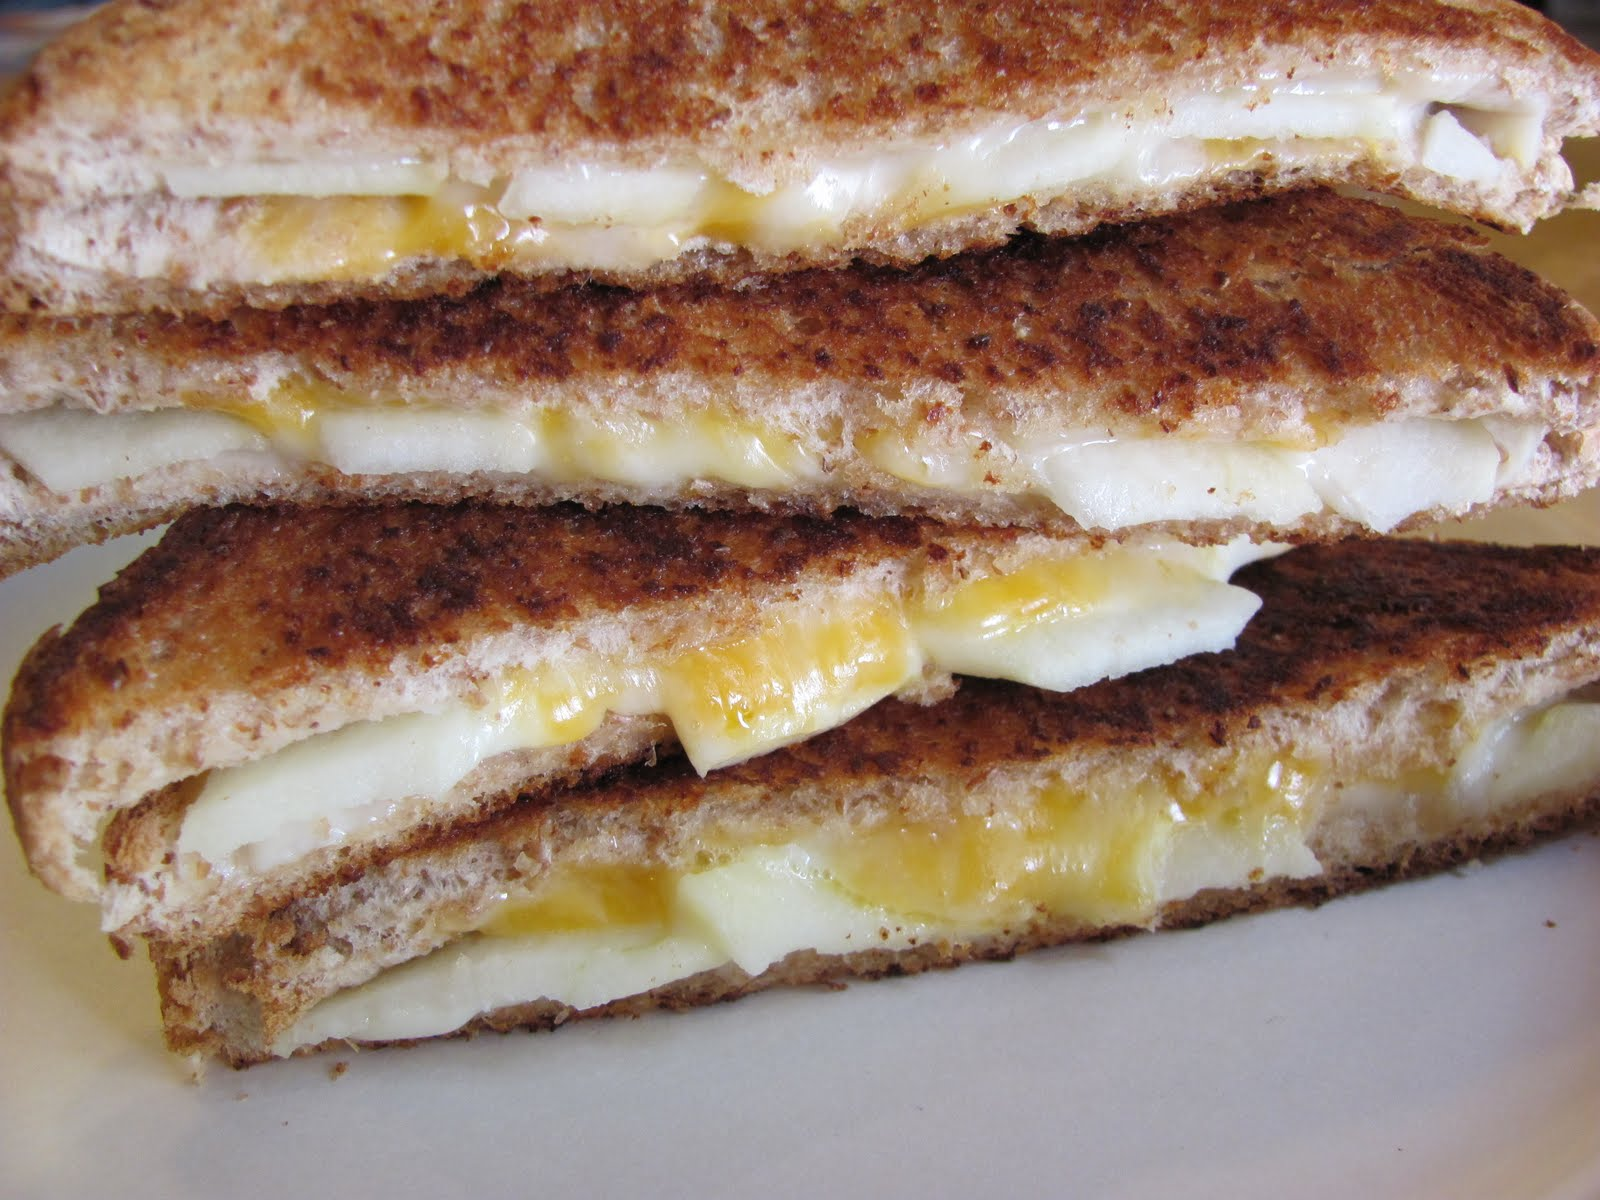 Recipes for You: Grilled Cheddar Apple Sandwiches or Quesadillas